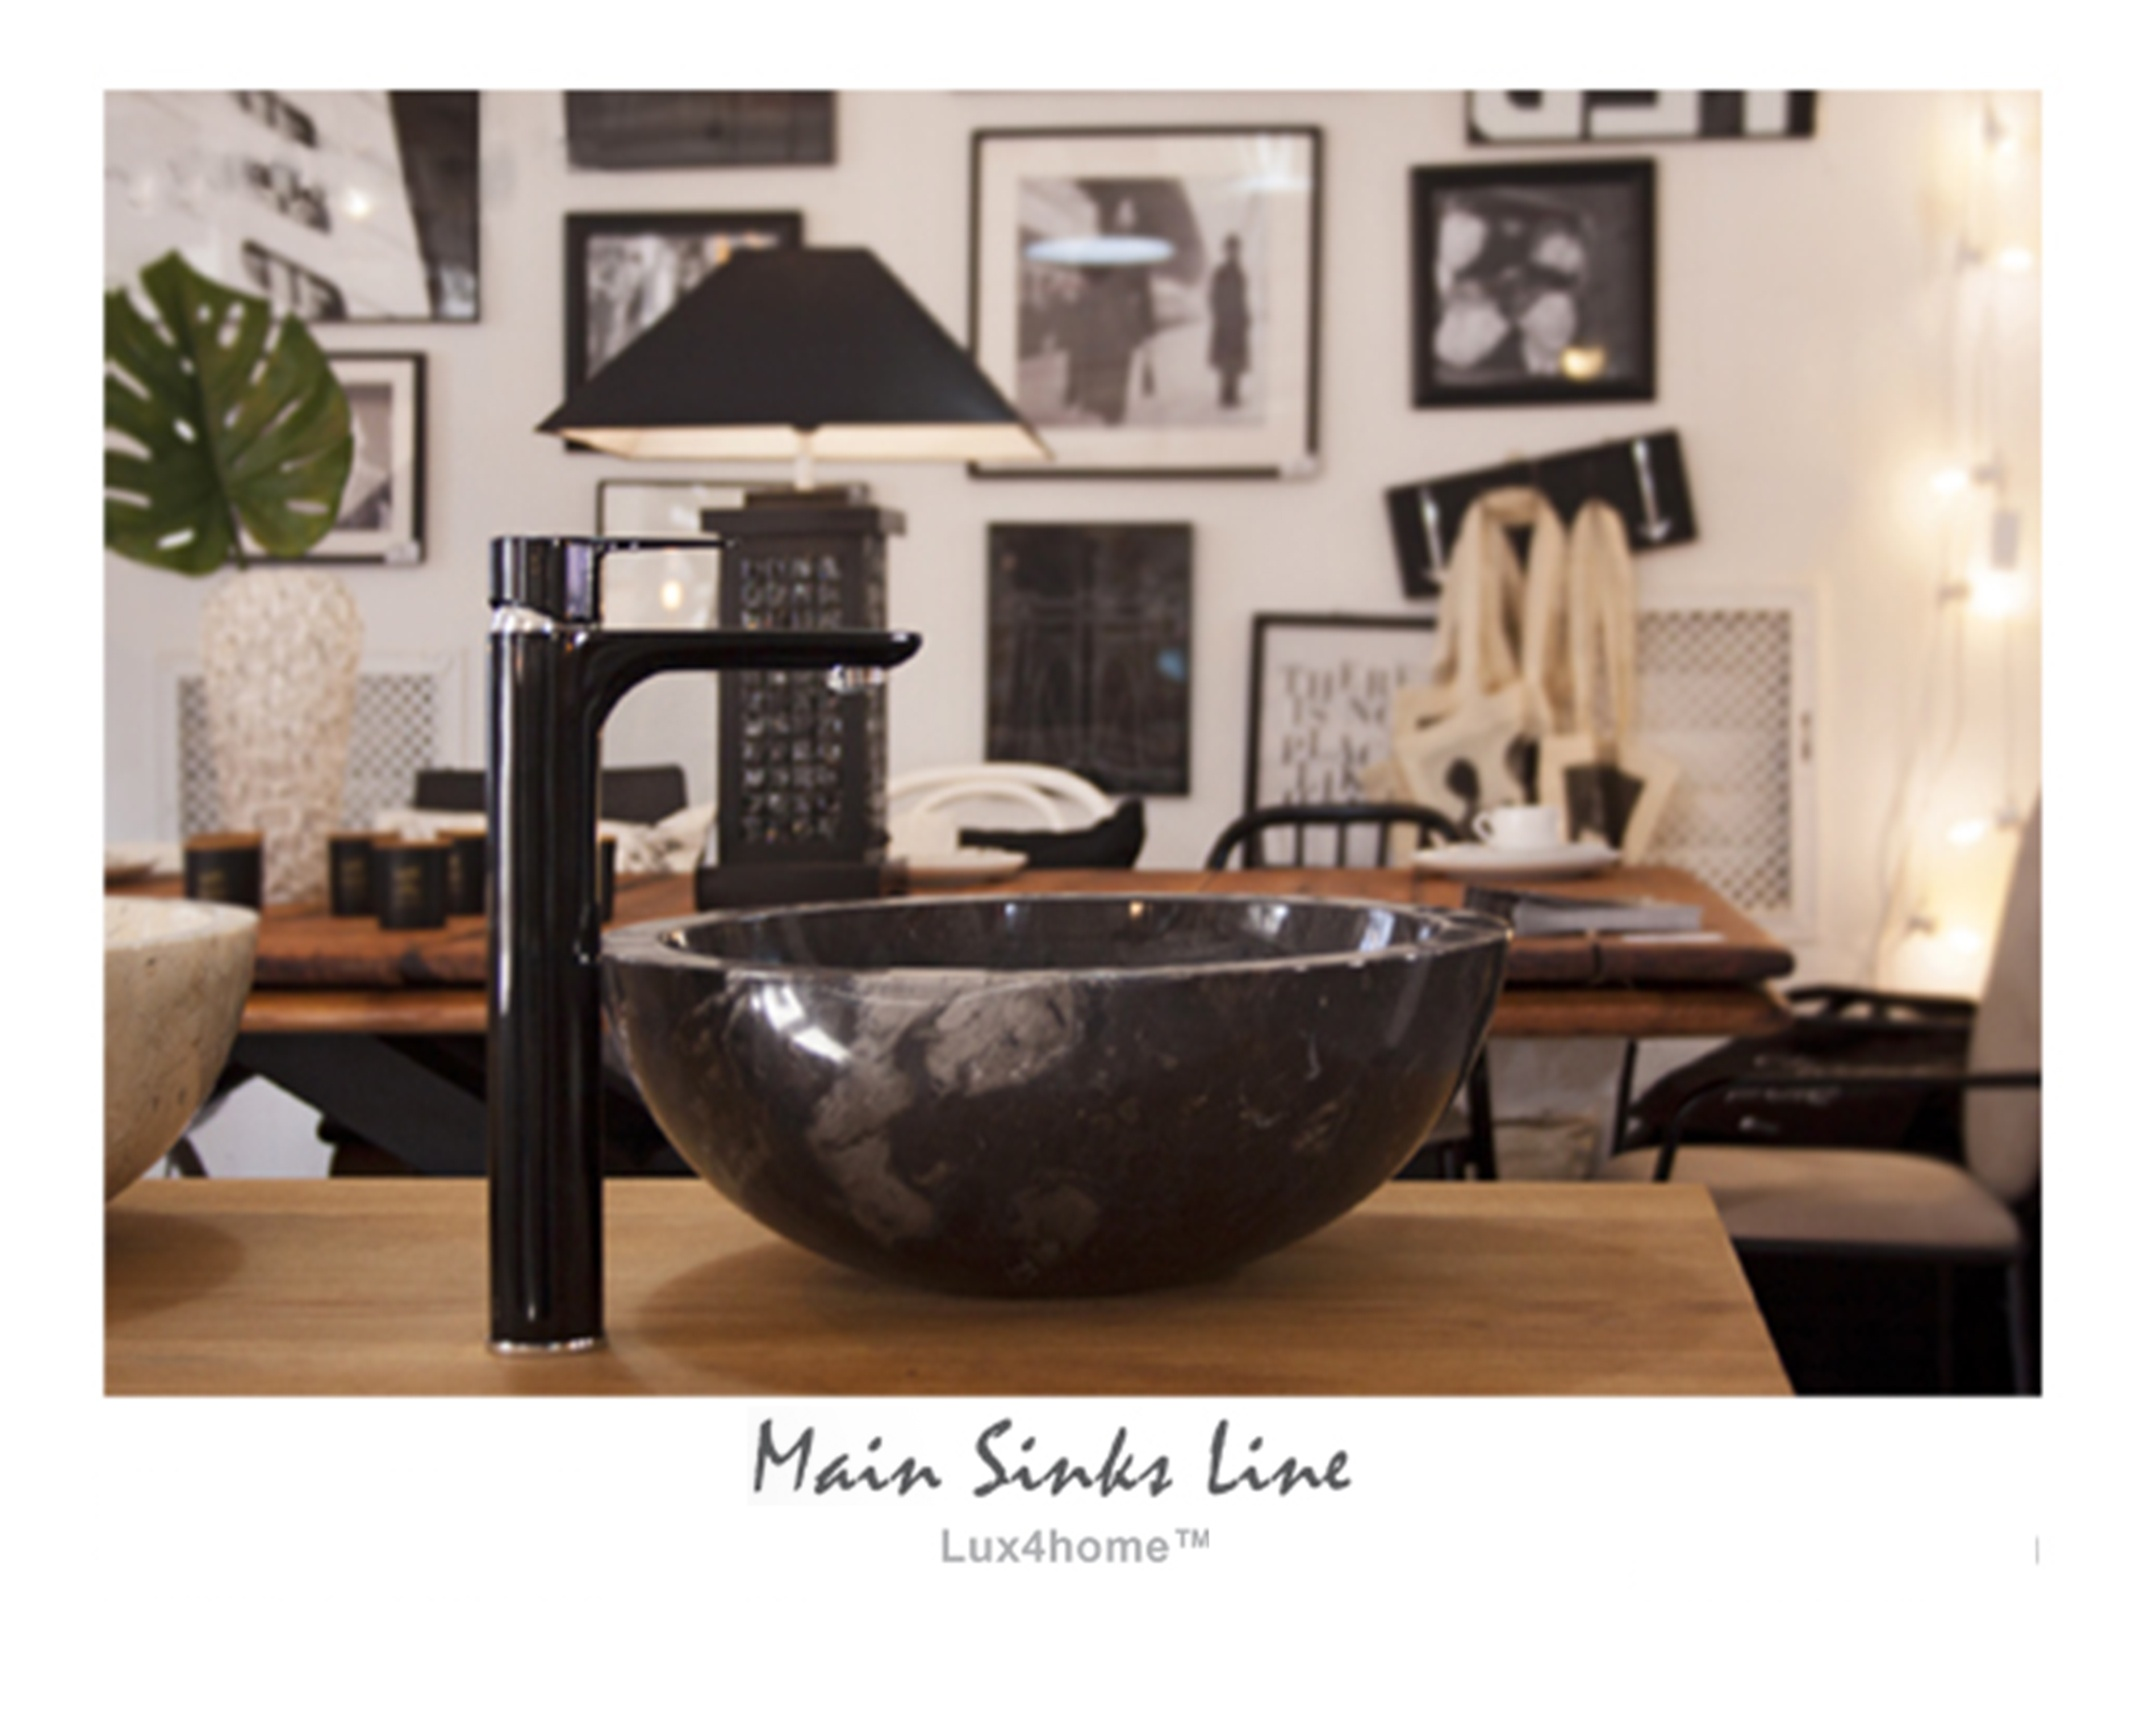 Marble Sinks Producer